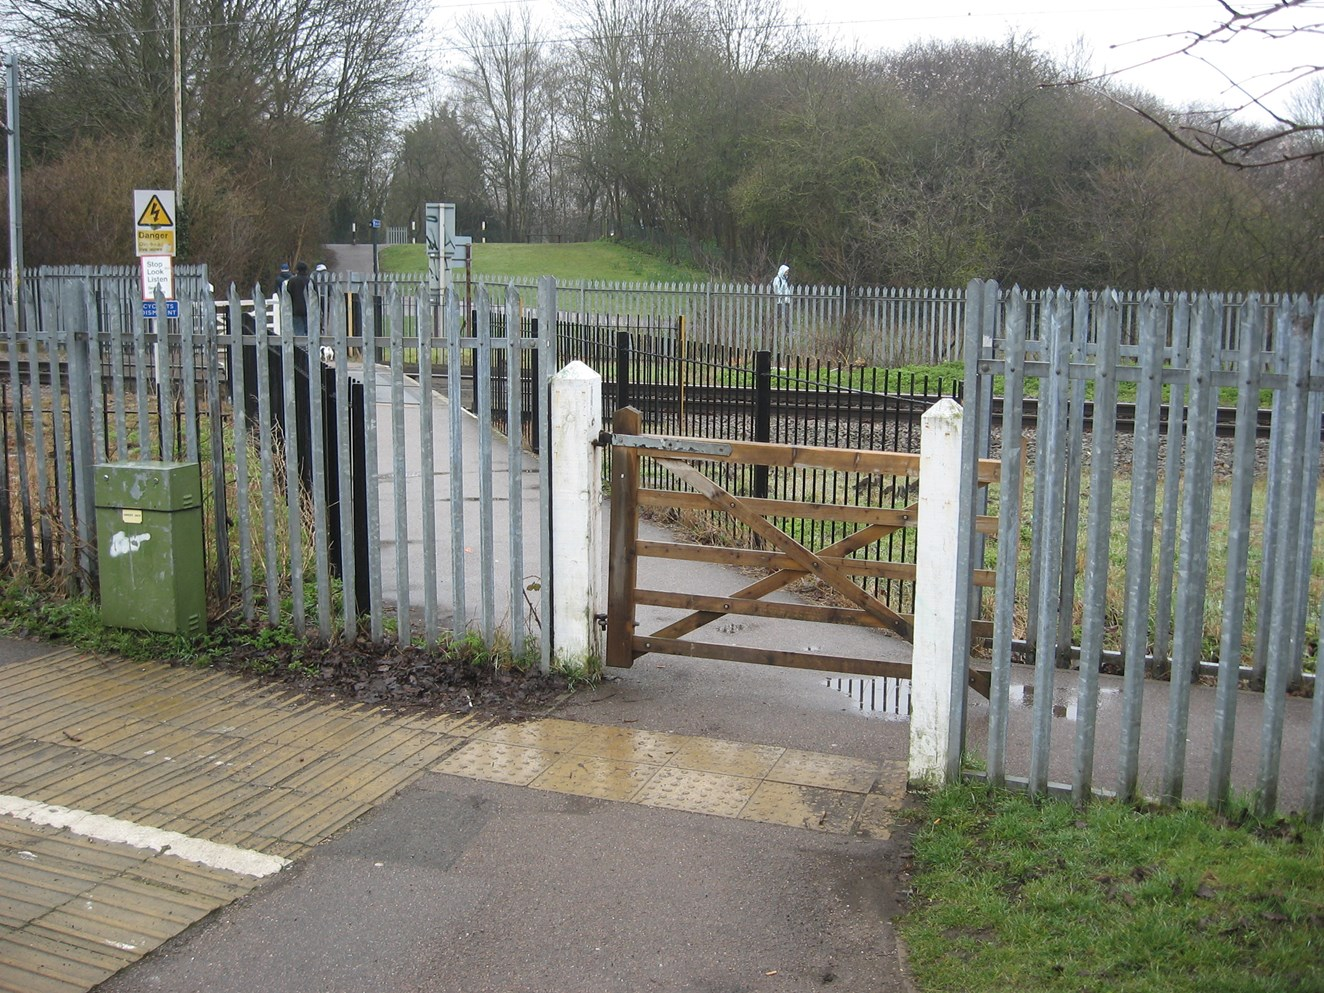 Pedestrian's near miss with train prompts safety warning at Cottonmill Lane crossing: Cotton Mill Lane level crossing